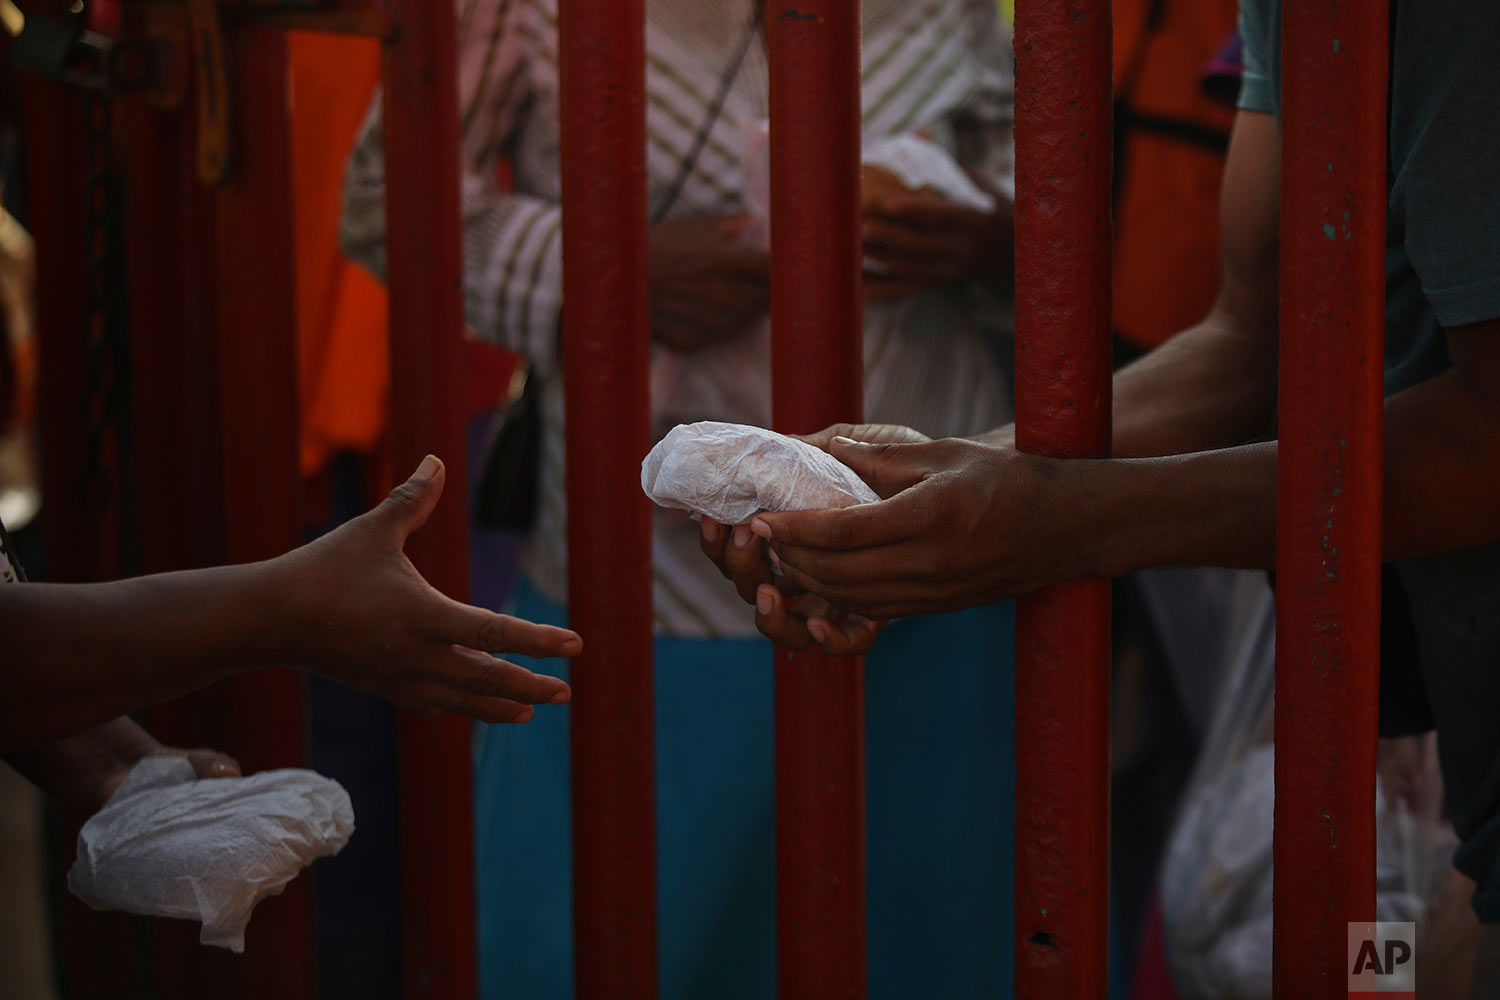 Volunteers pass sandwiches through a fence to Central American migrants traveling with the annual Stations of the Cross caravan as they camp out at a sports club in Matias Romero, Oaxaca state, Mexico, Tuesday, April 3, 2018. (AP Photo/Felix Marquez)